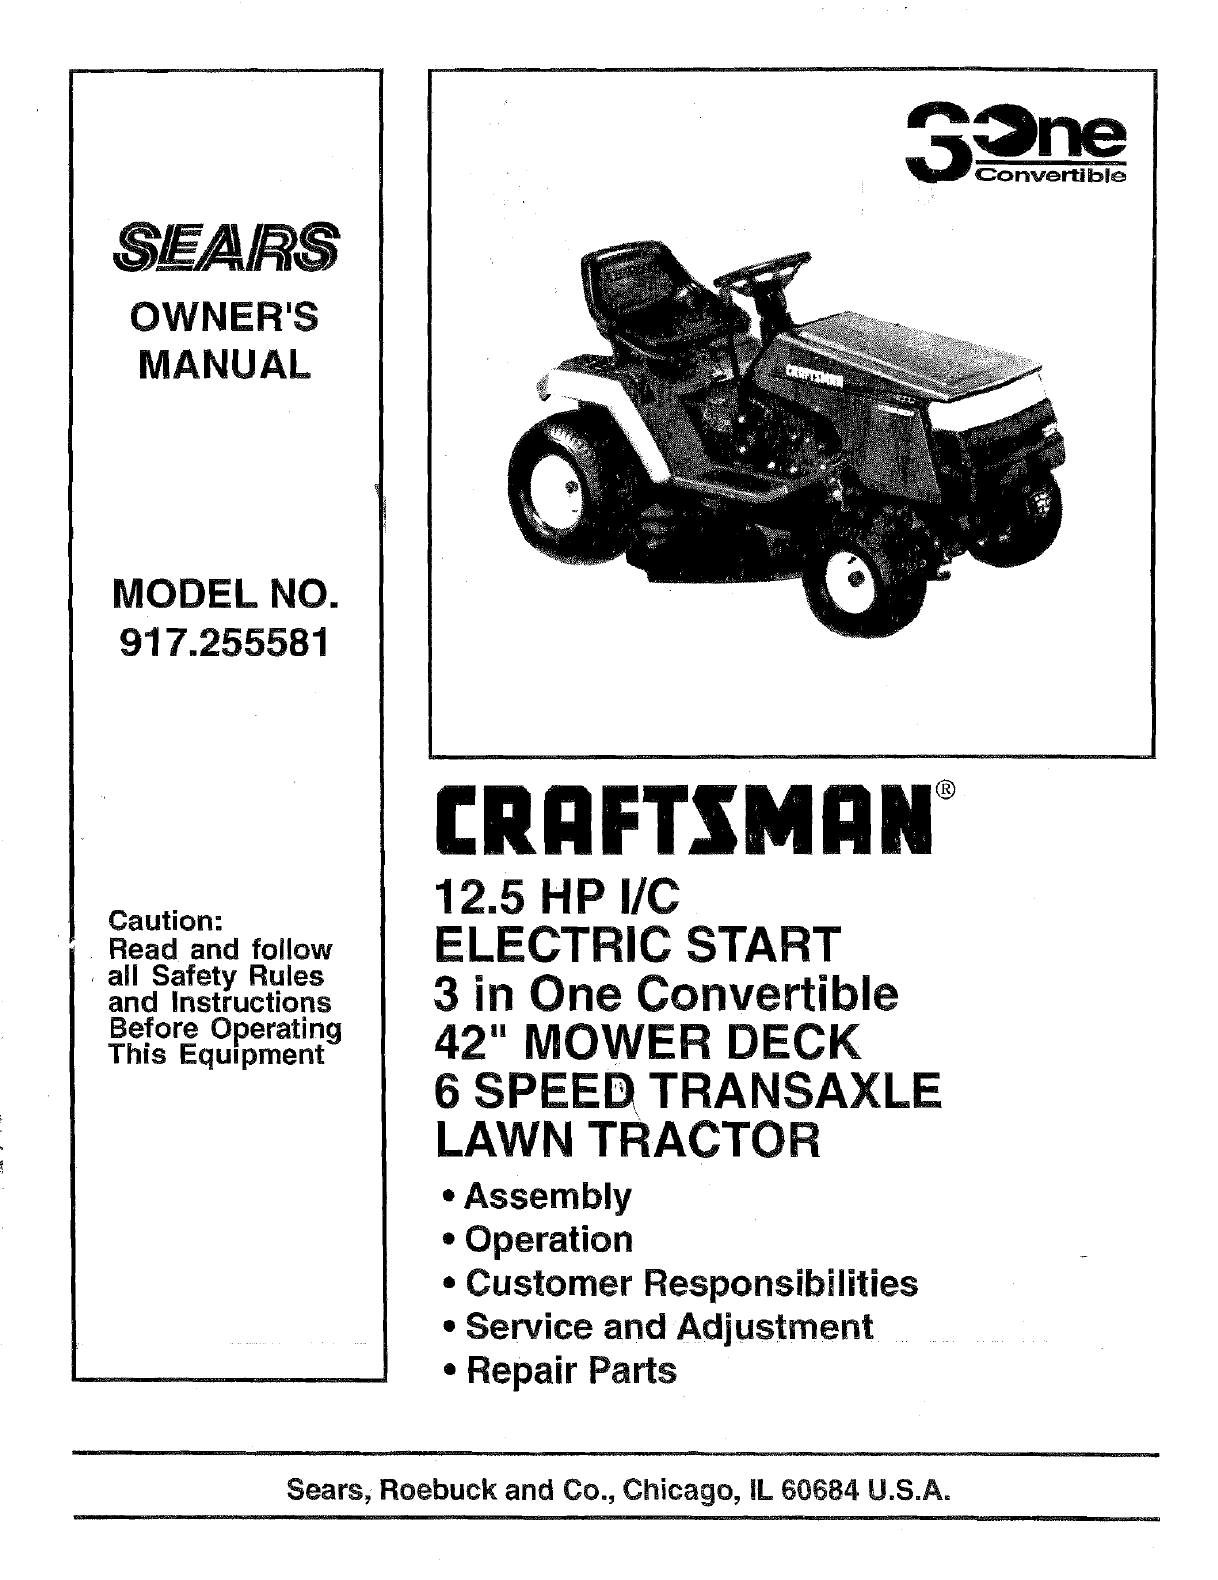 Craftsman 917255581 User Manual TRACTOR Manuals And Guides